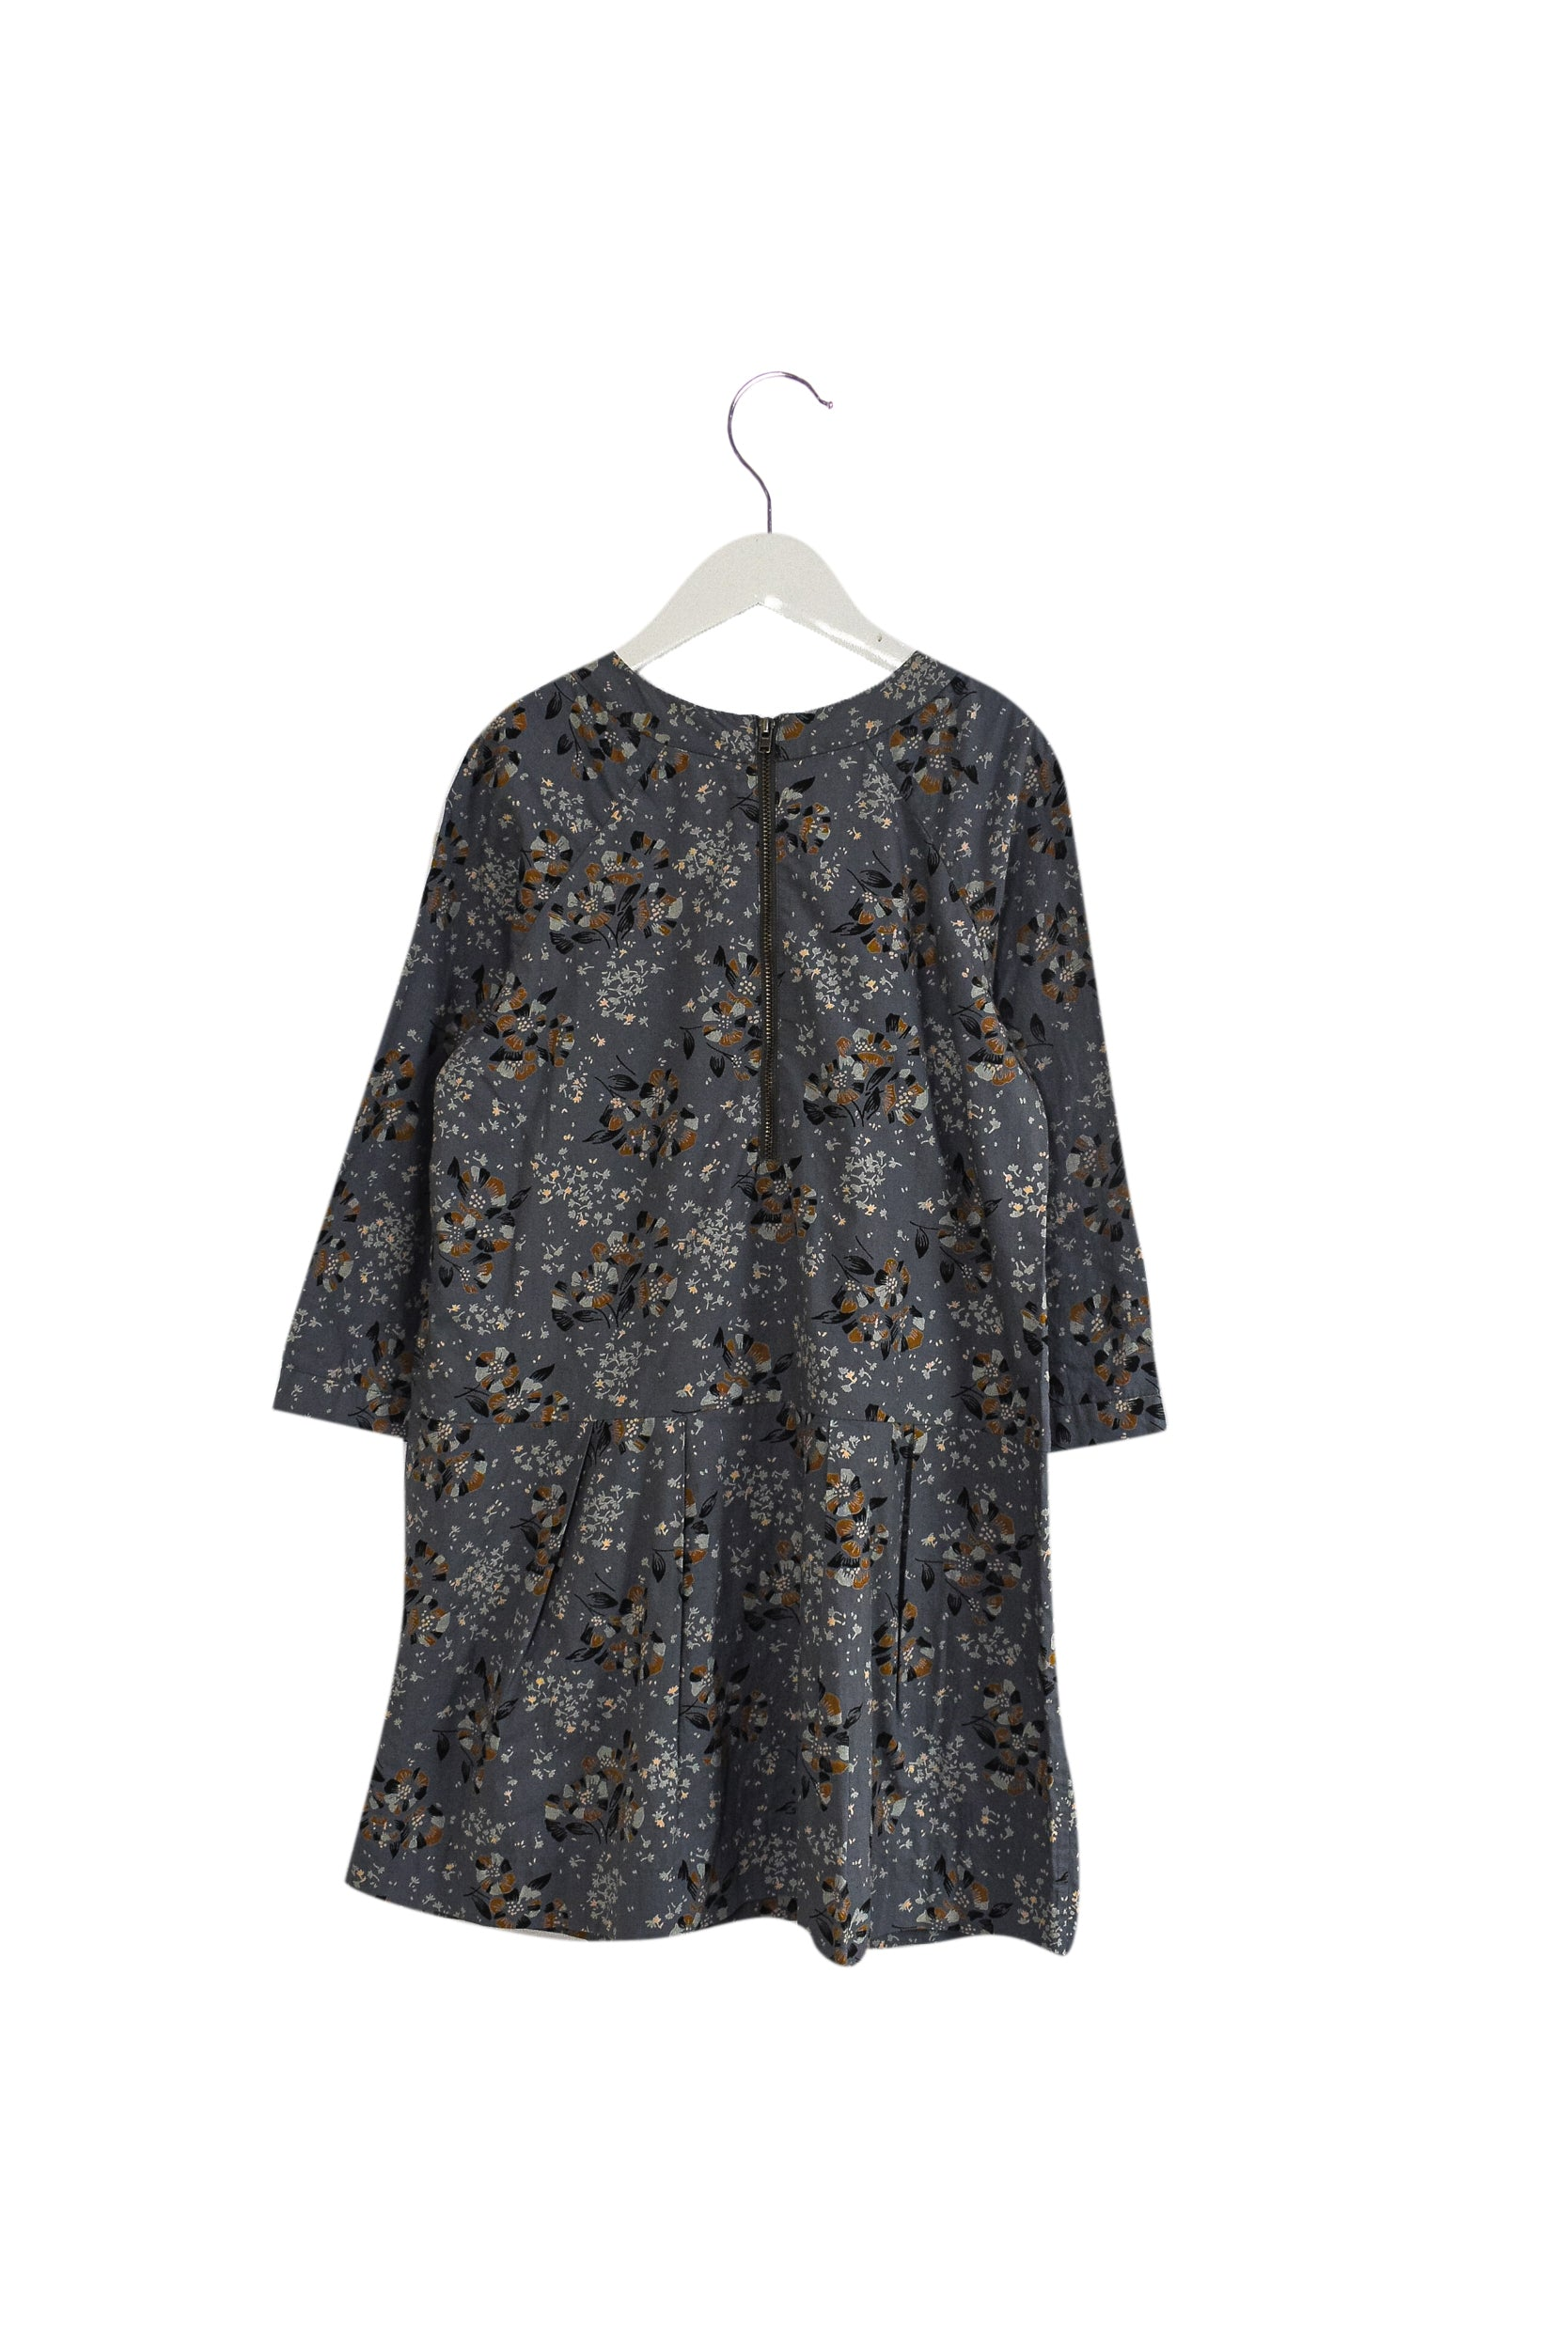 Long Sleeve Dress 10Y at Retykle